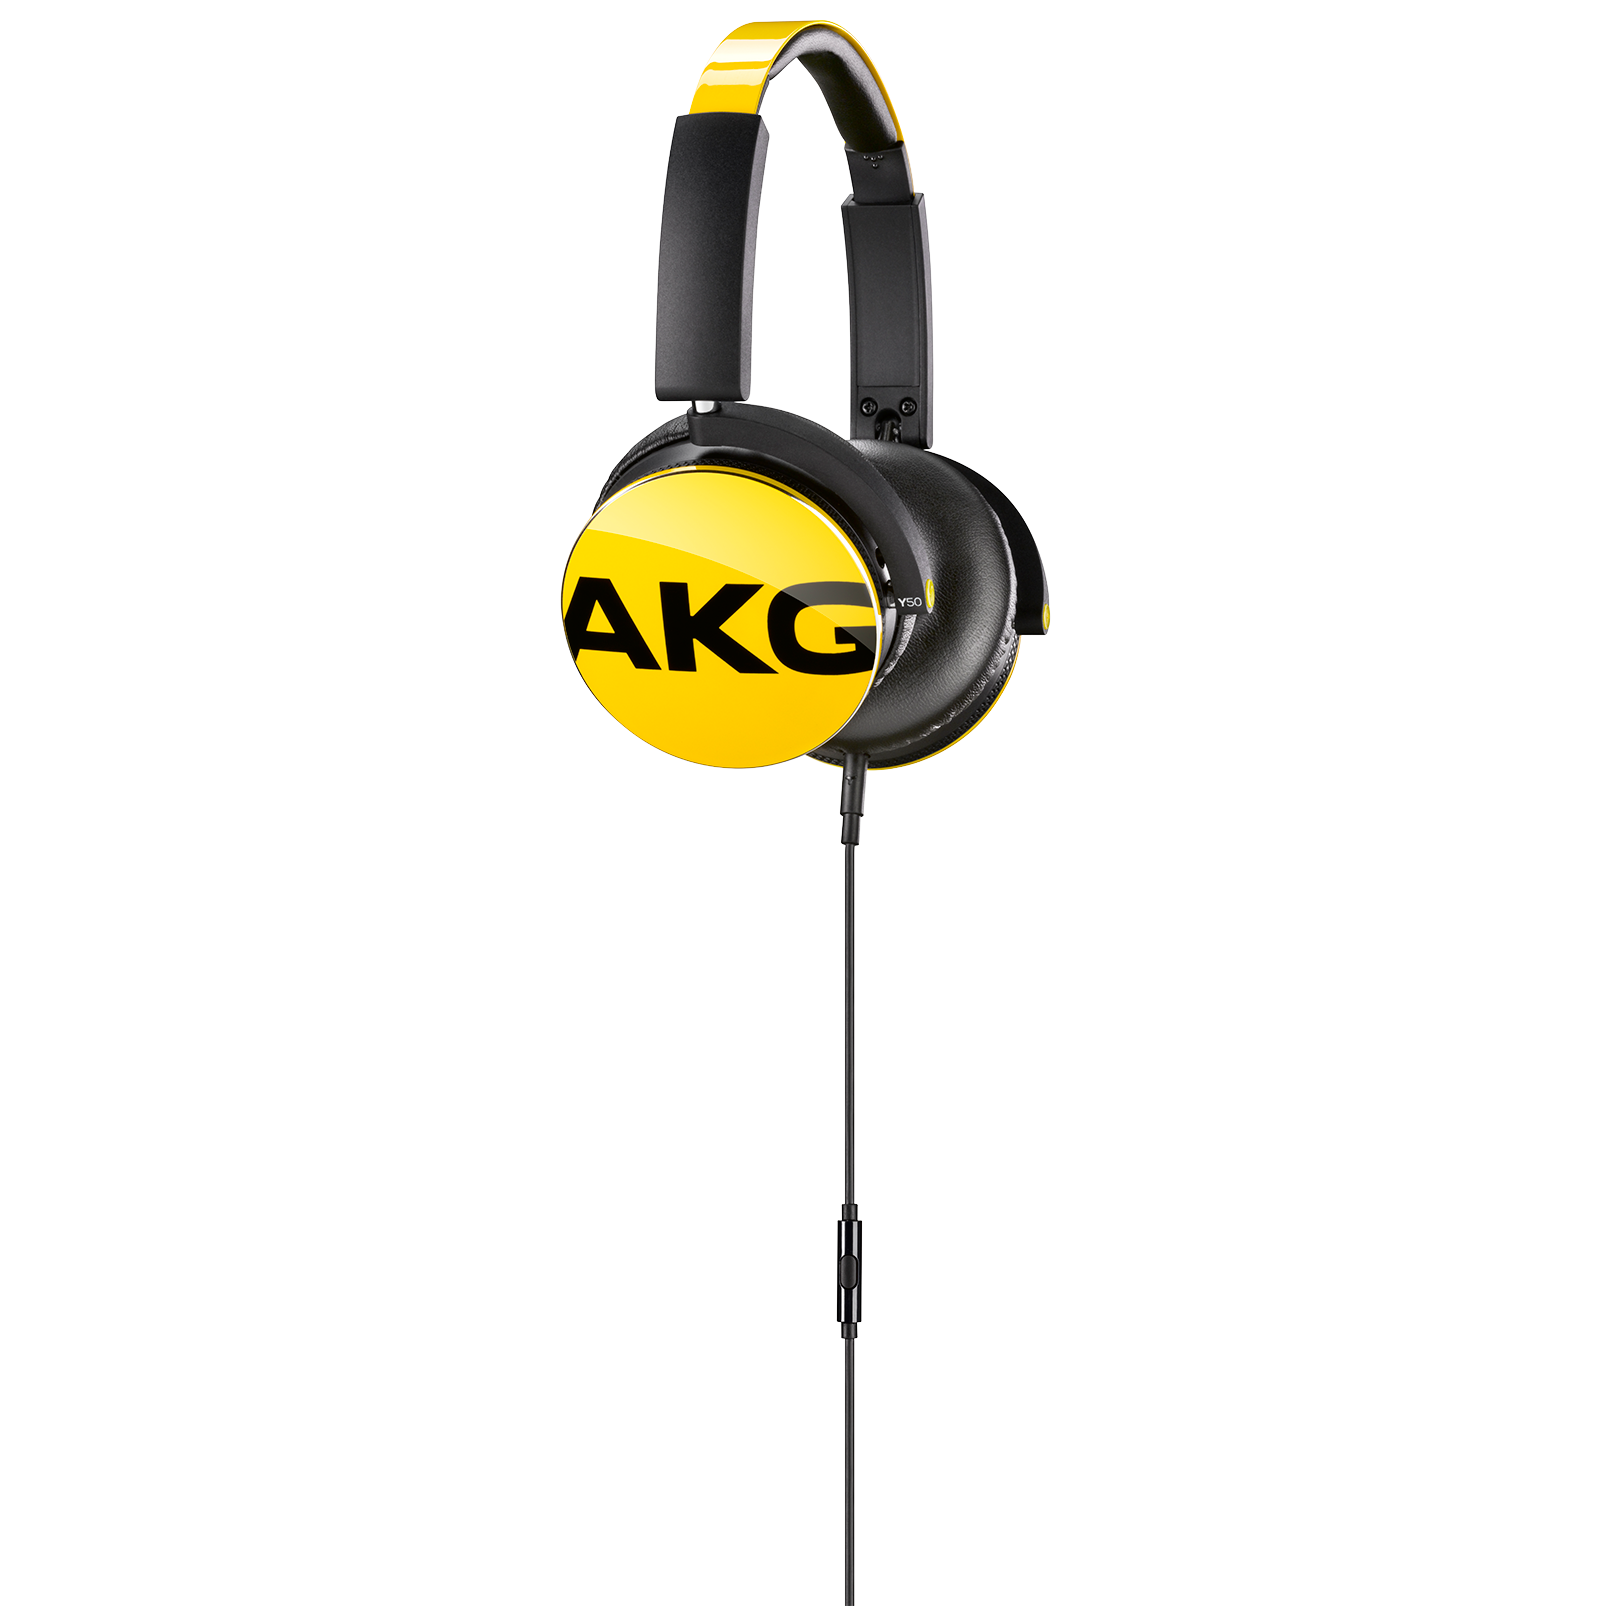 Y50 - Yellow - On-ear headphones with AKG-quality sound, smart styling, snug fit and detachable cable with in-line remote/mic - Detailshot 1